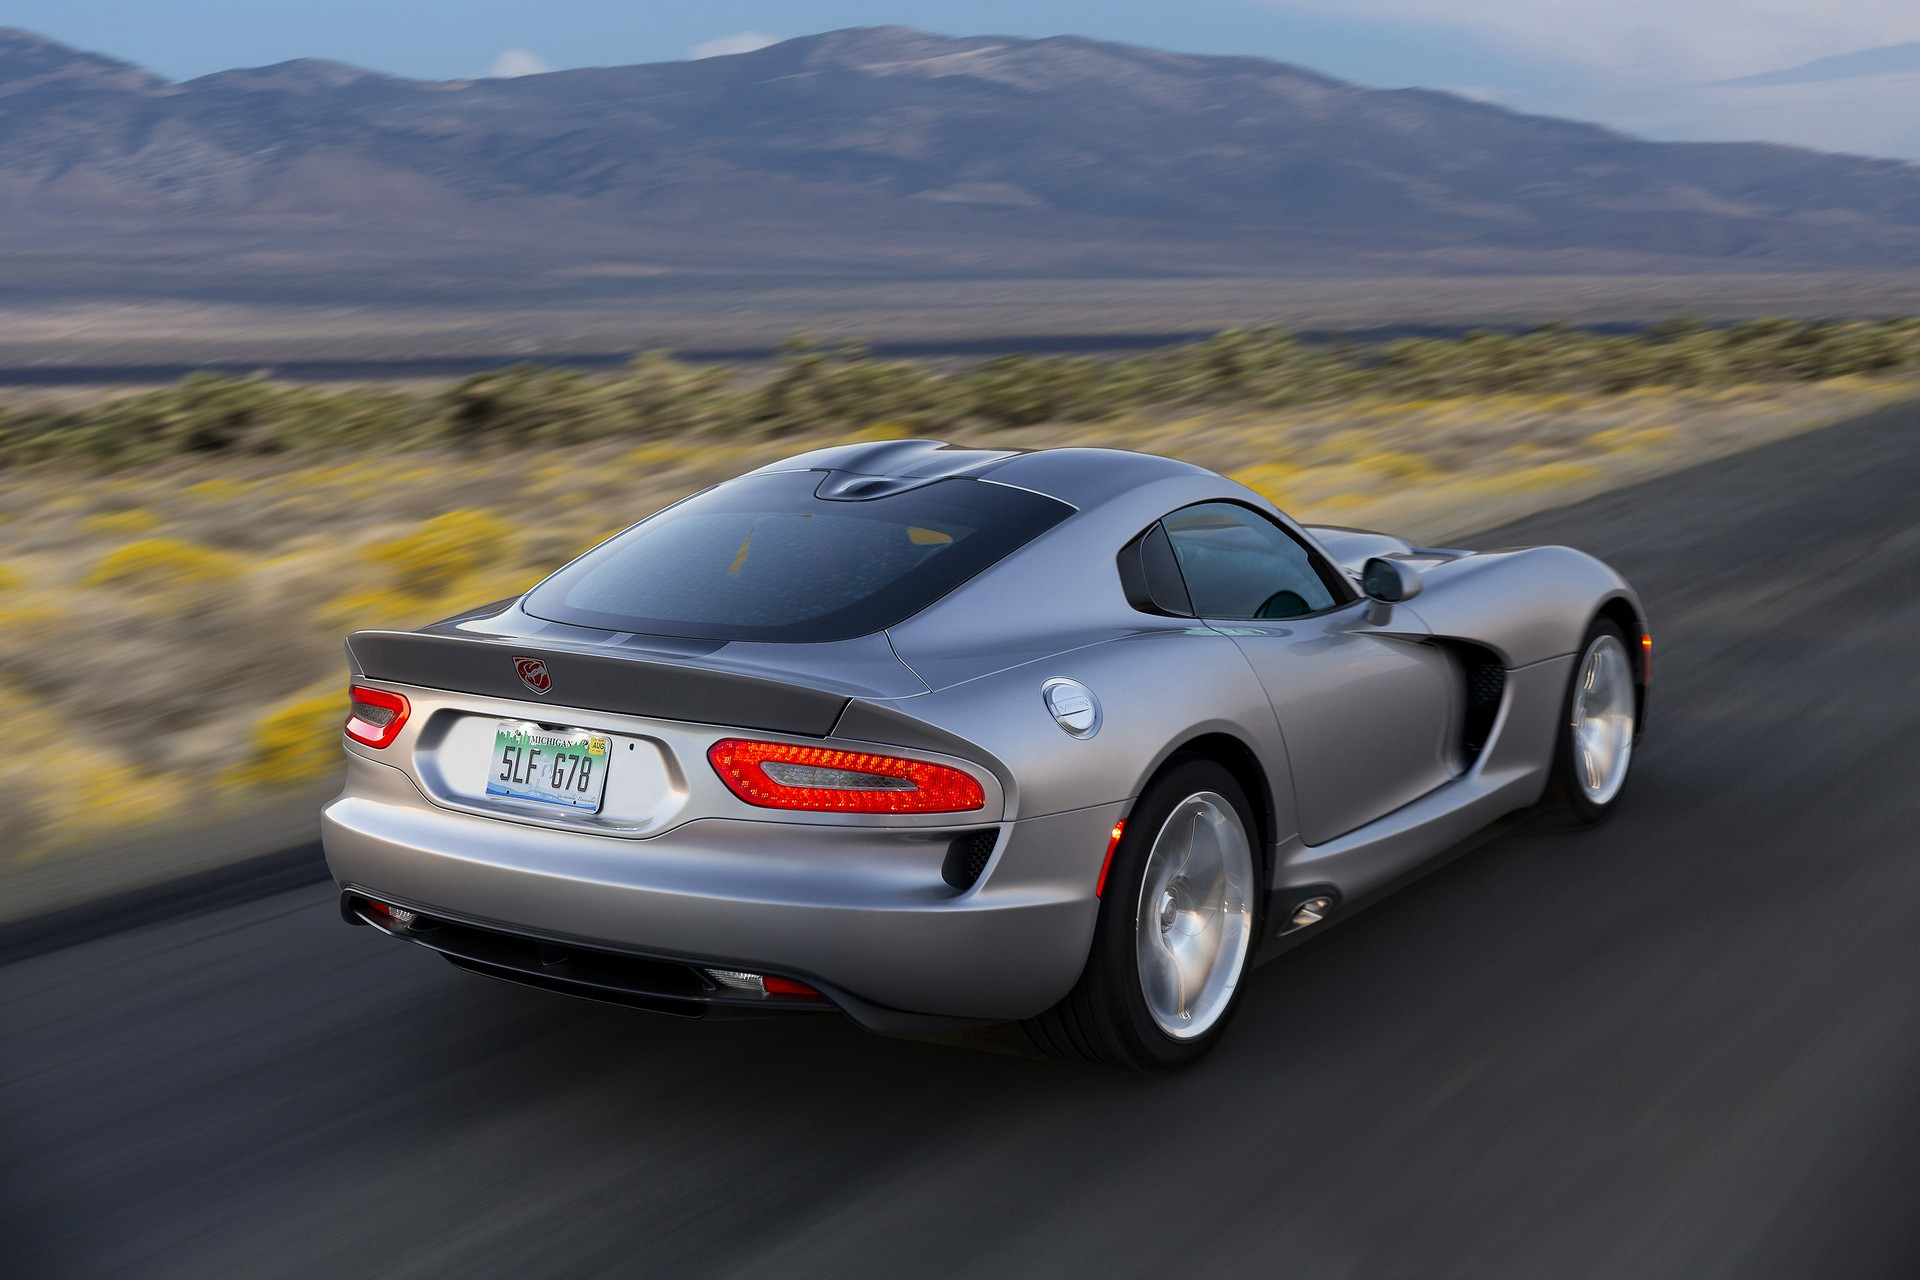 hight resolution of dodge viper s next update may see more power and convertible option rh motorauthority com wiring diagram